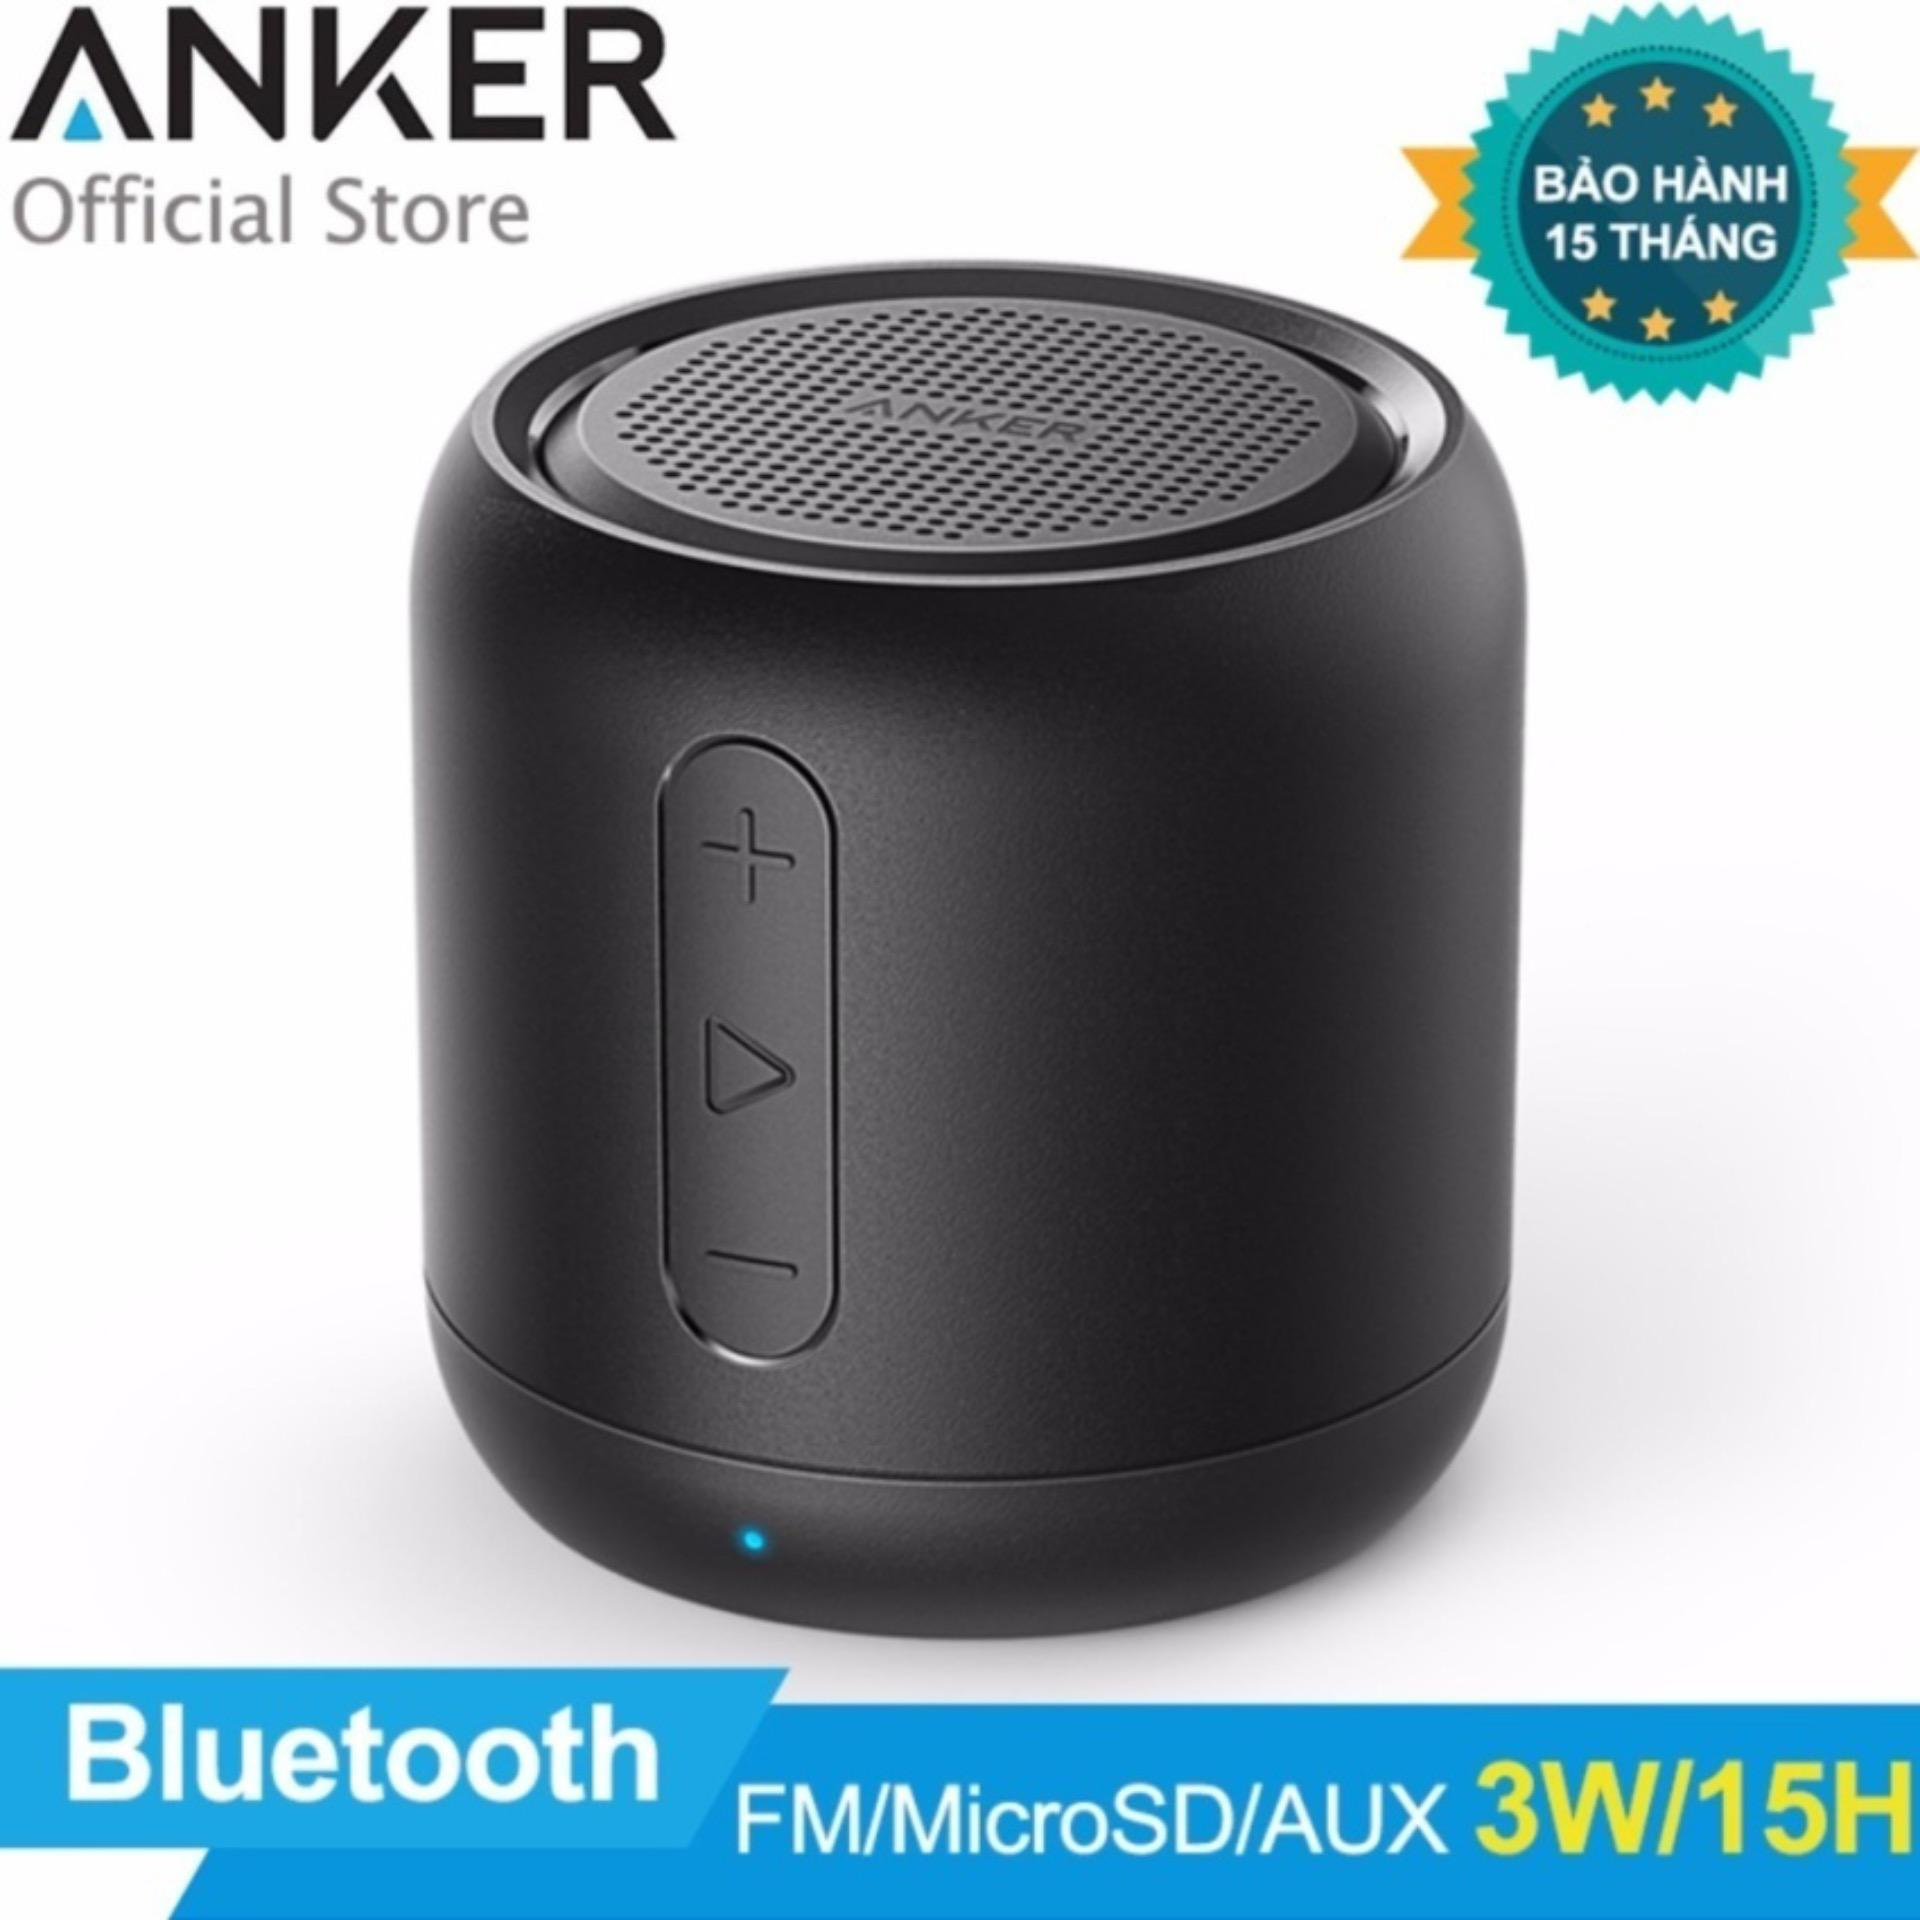 Anker Bluetooth Speaker Fm Radio Bluetooth Usb Cable Replacement Ihealth Blood Pressure Monitor Troubleshooting Lg Bluetooth Headset For Phone: Loa Di động Bluetooth ANKER SoundCore Stereo Speaker (Đen